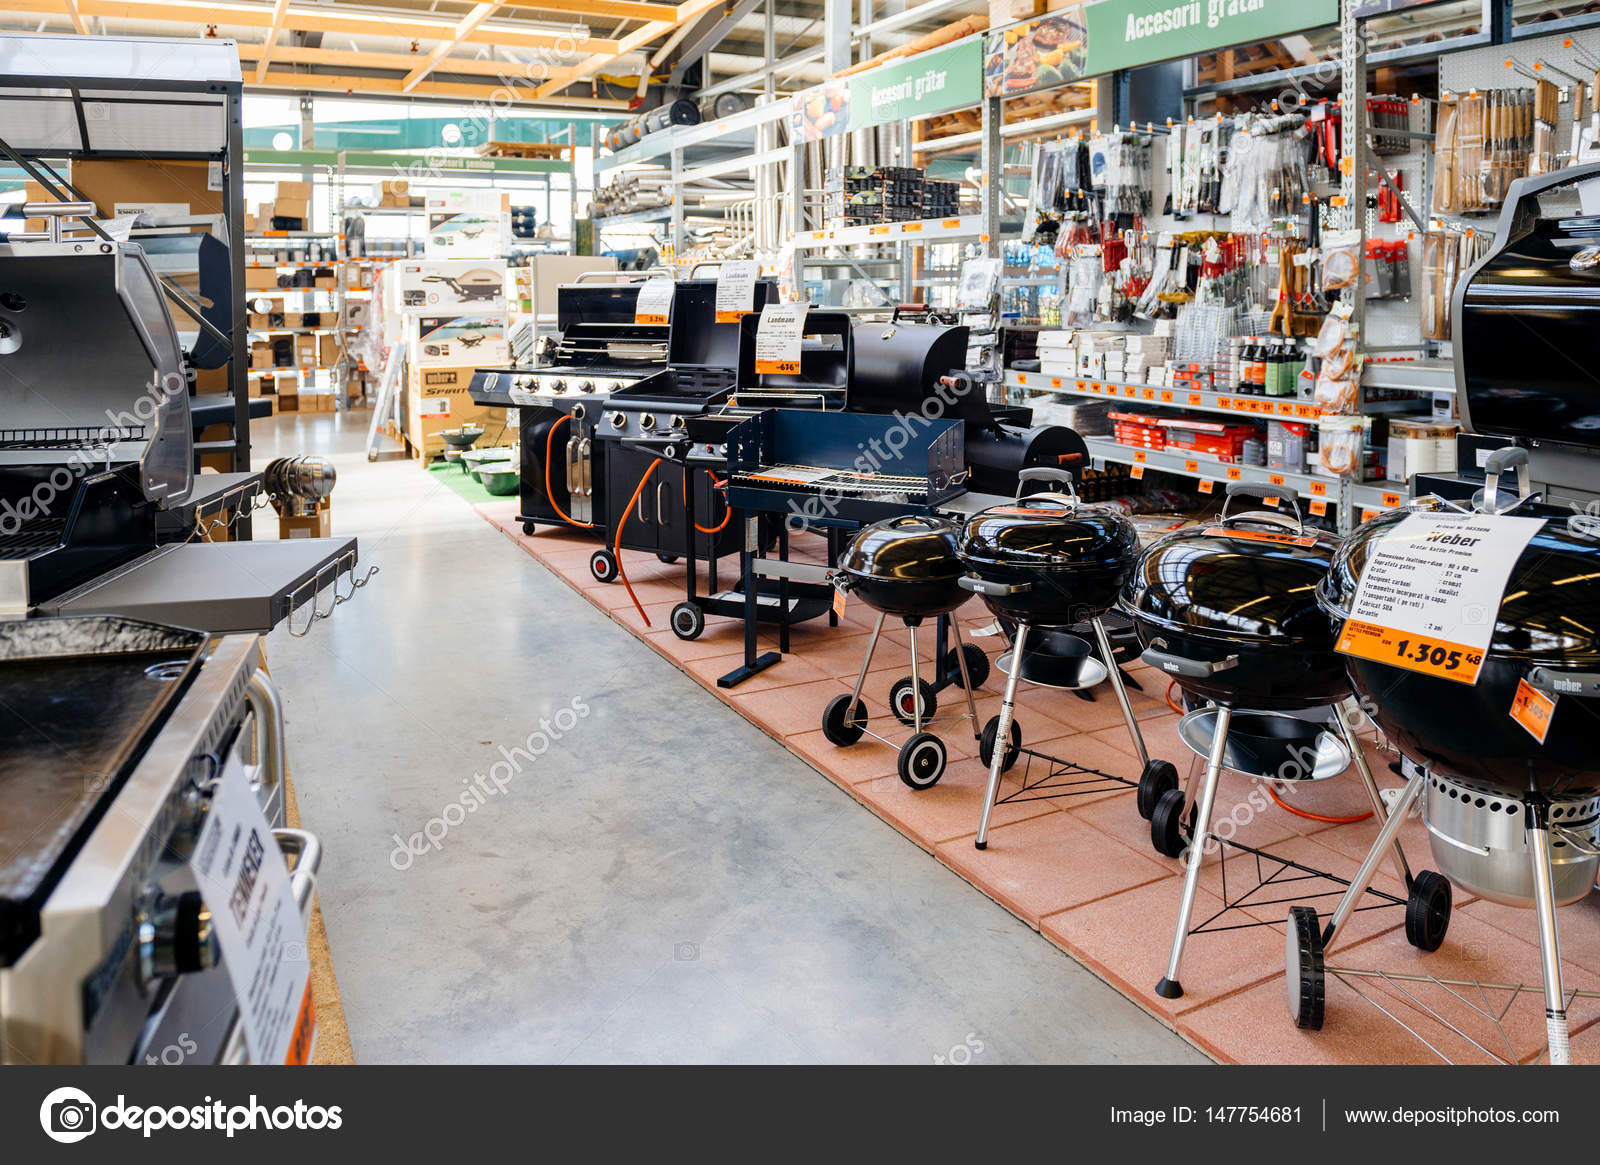 Hornbach diy store with barbeque large selection of appliances bucharest romania apr 1 2016 interior of hornbach the german diy store chain offering home improvement and do it yourself goods customers buying solutioingenieria Gallery